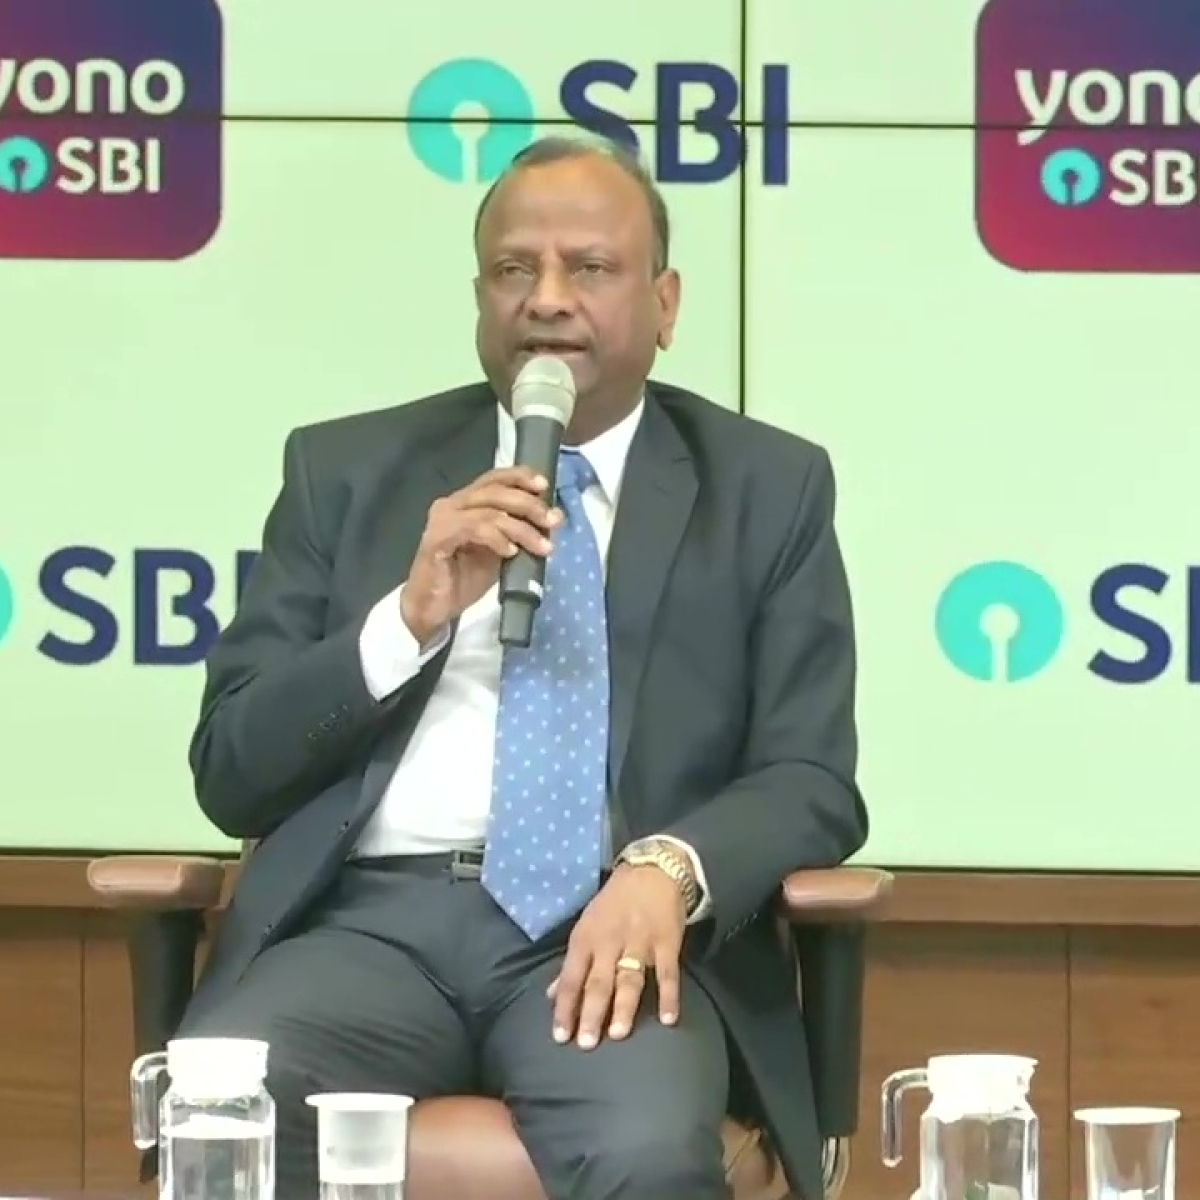 Clear inventories ASAP, keep bank a/c standard, improve perception: SBI chief to real estate